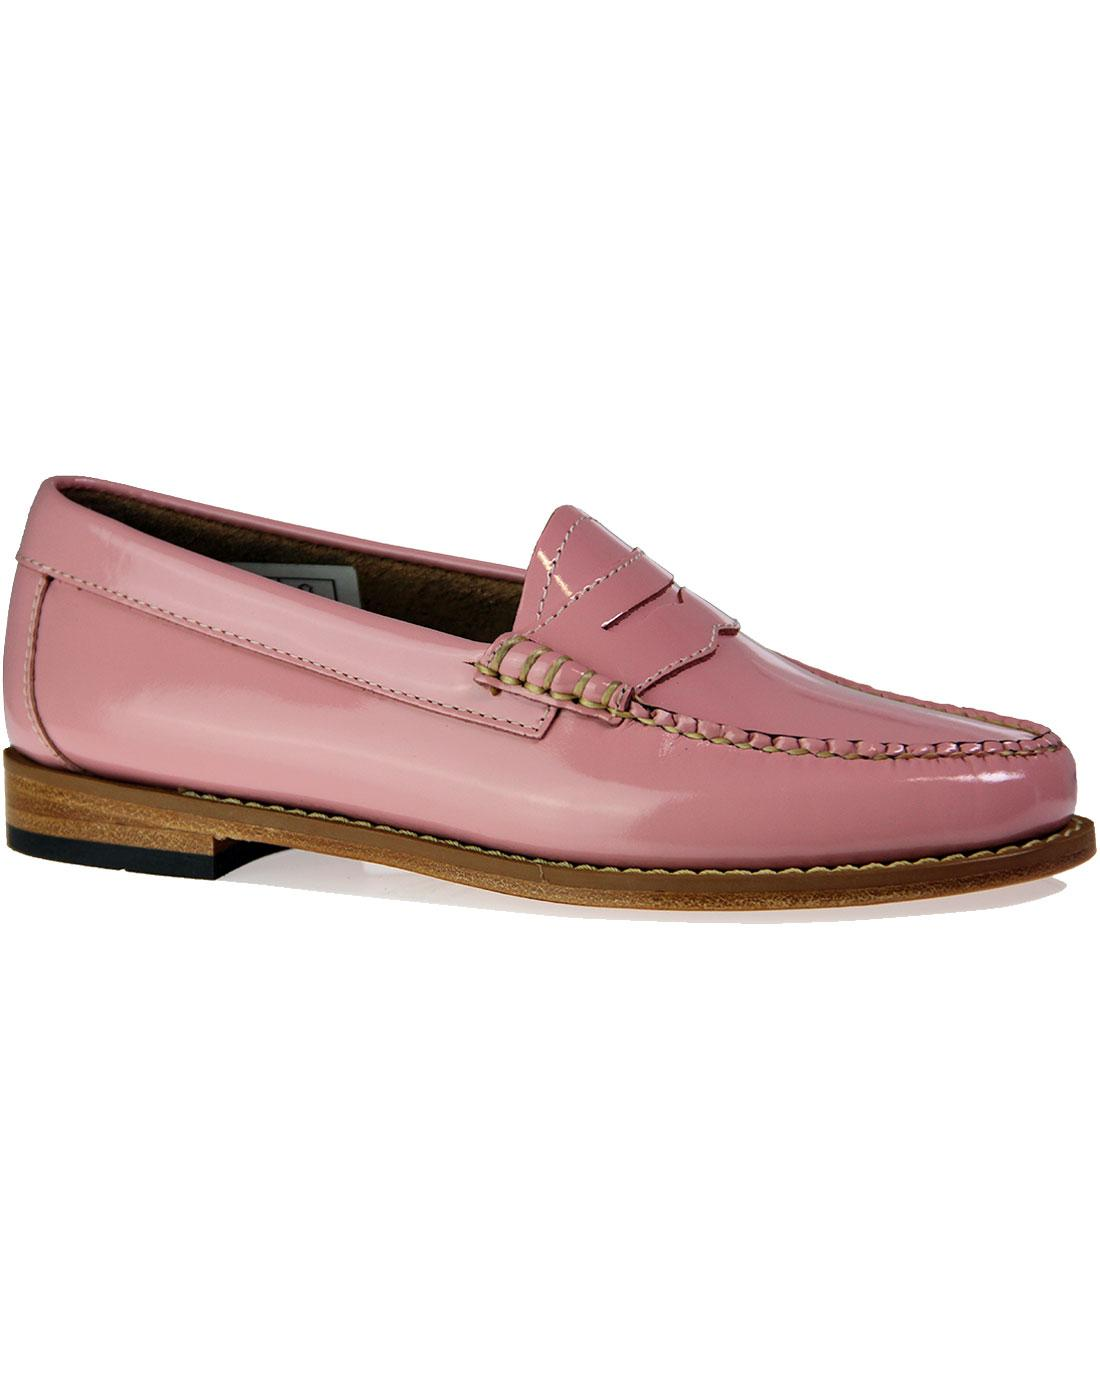 Penny Wheel BASS WEEJUN Retro Patent Loafers ROSE